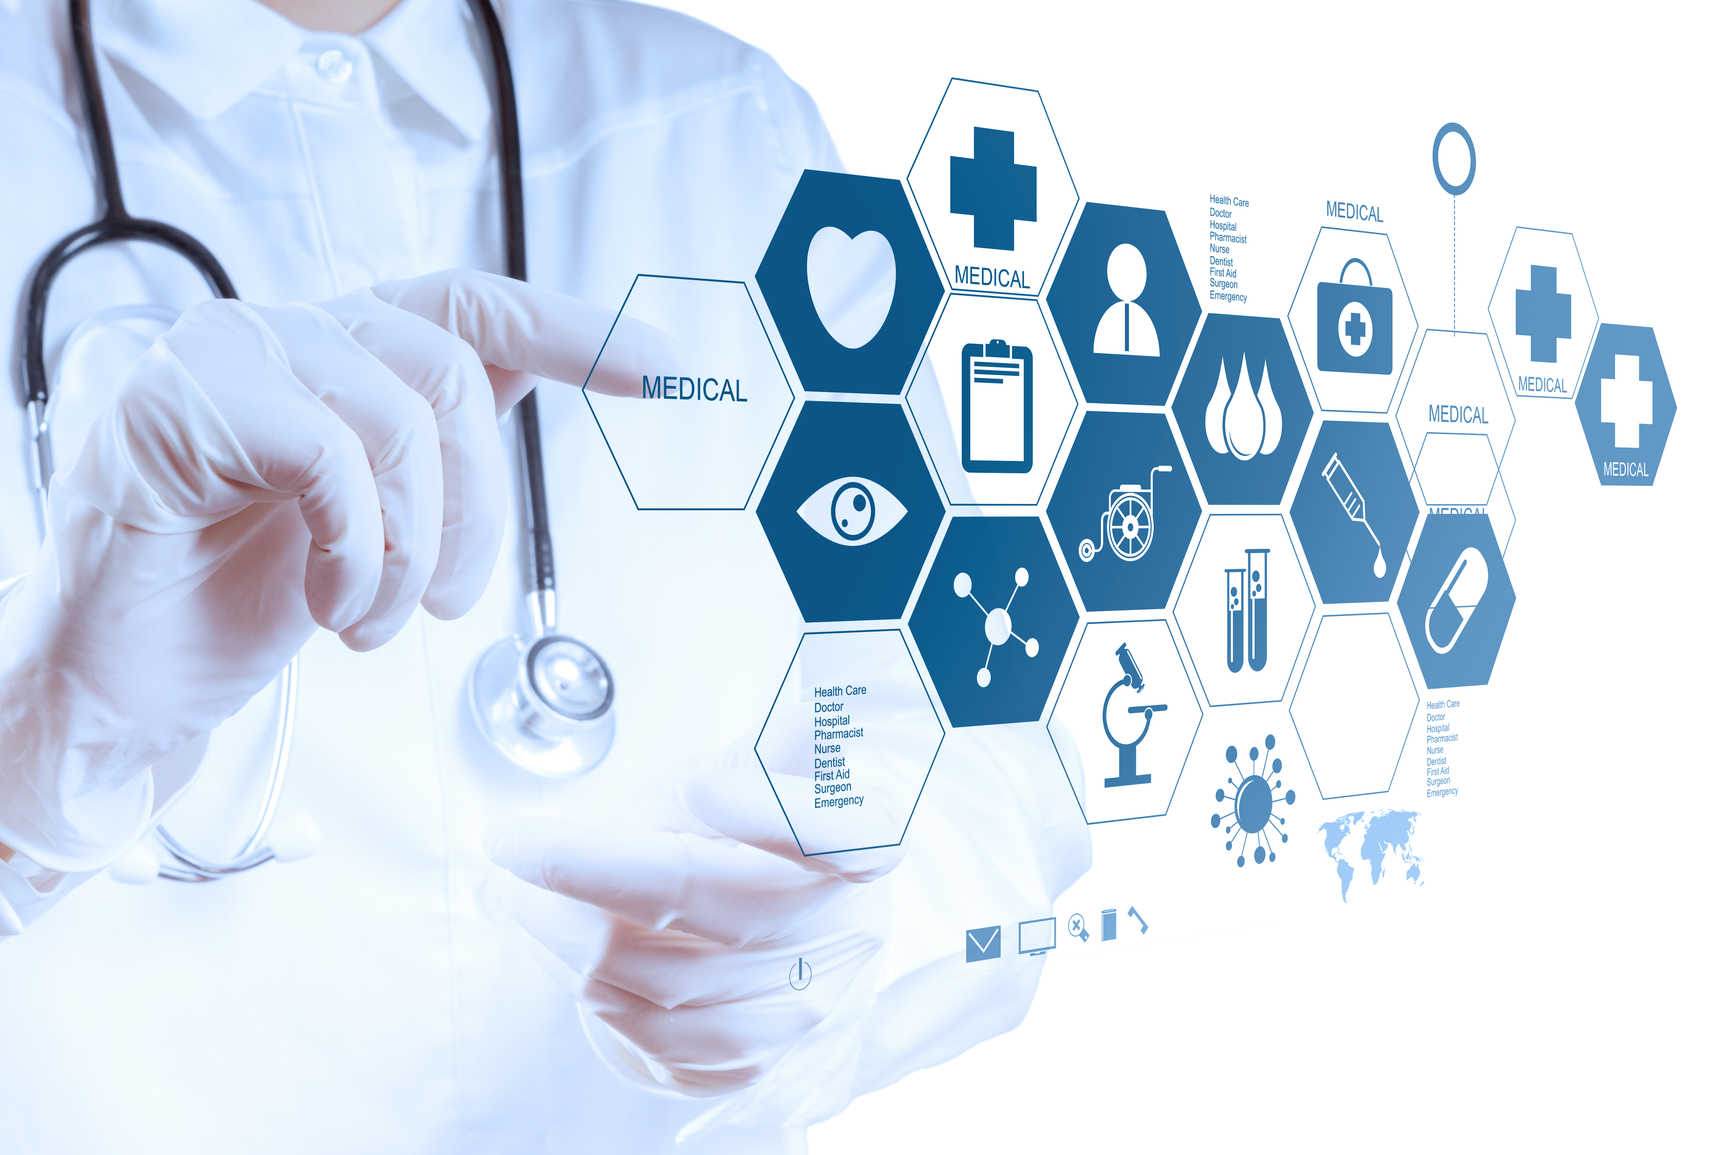 Medical Technology On The Move